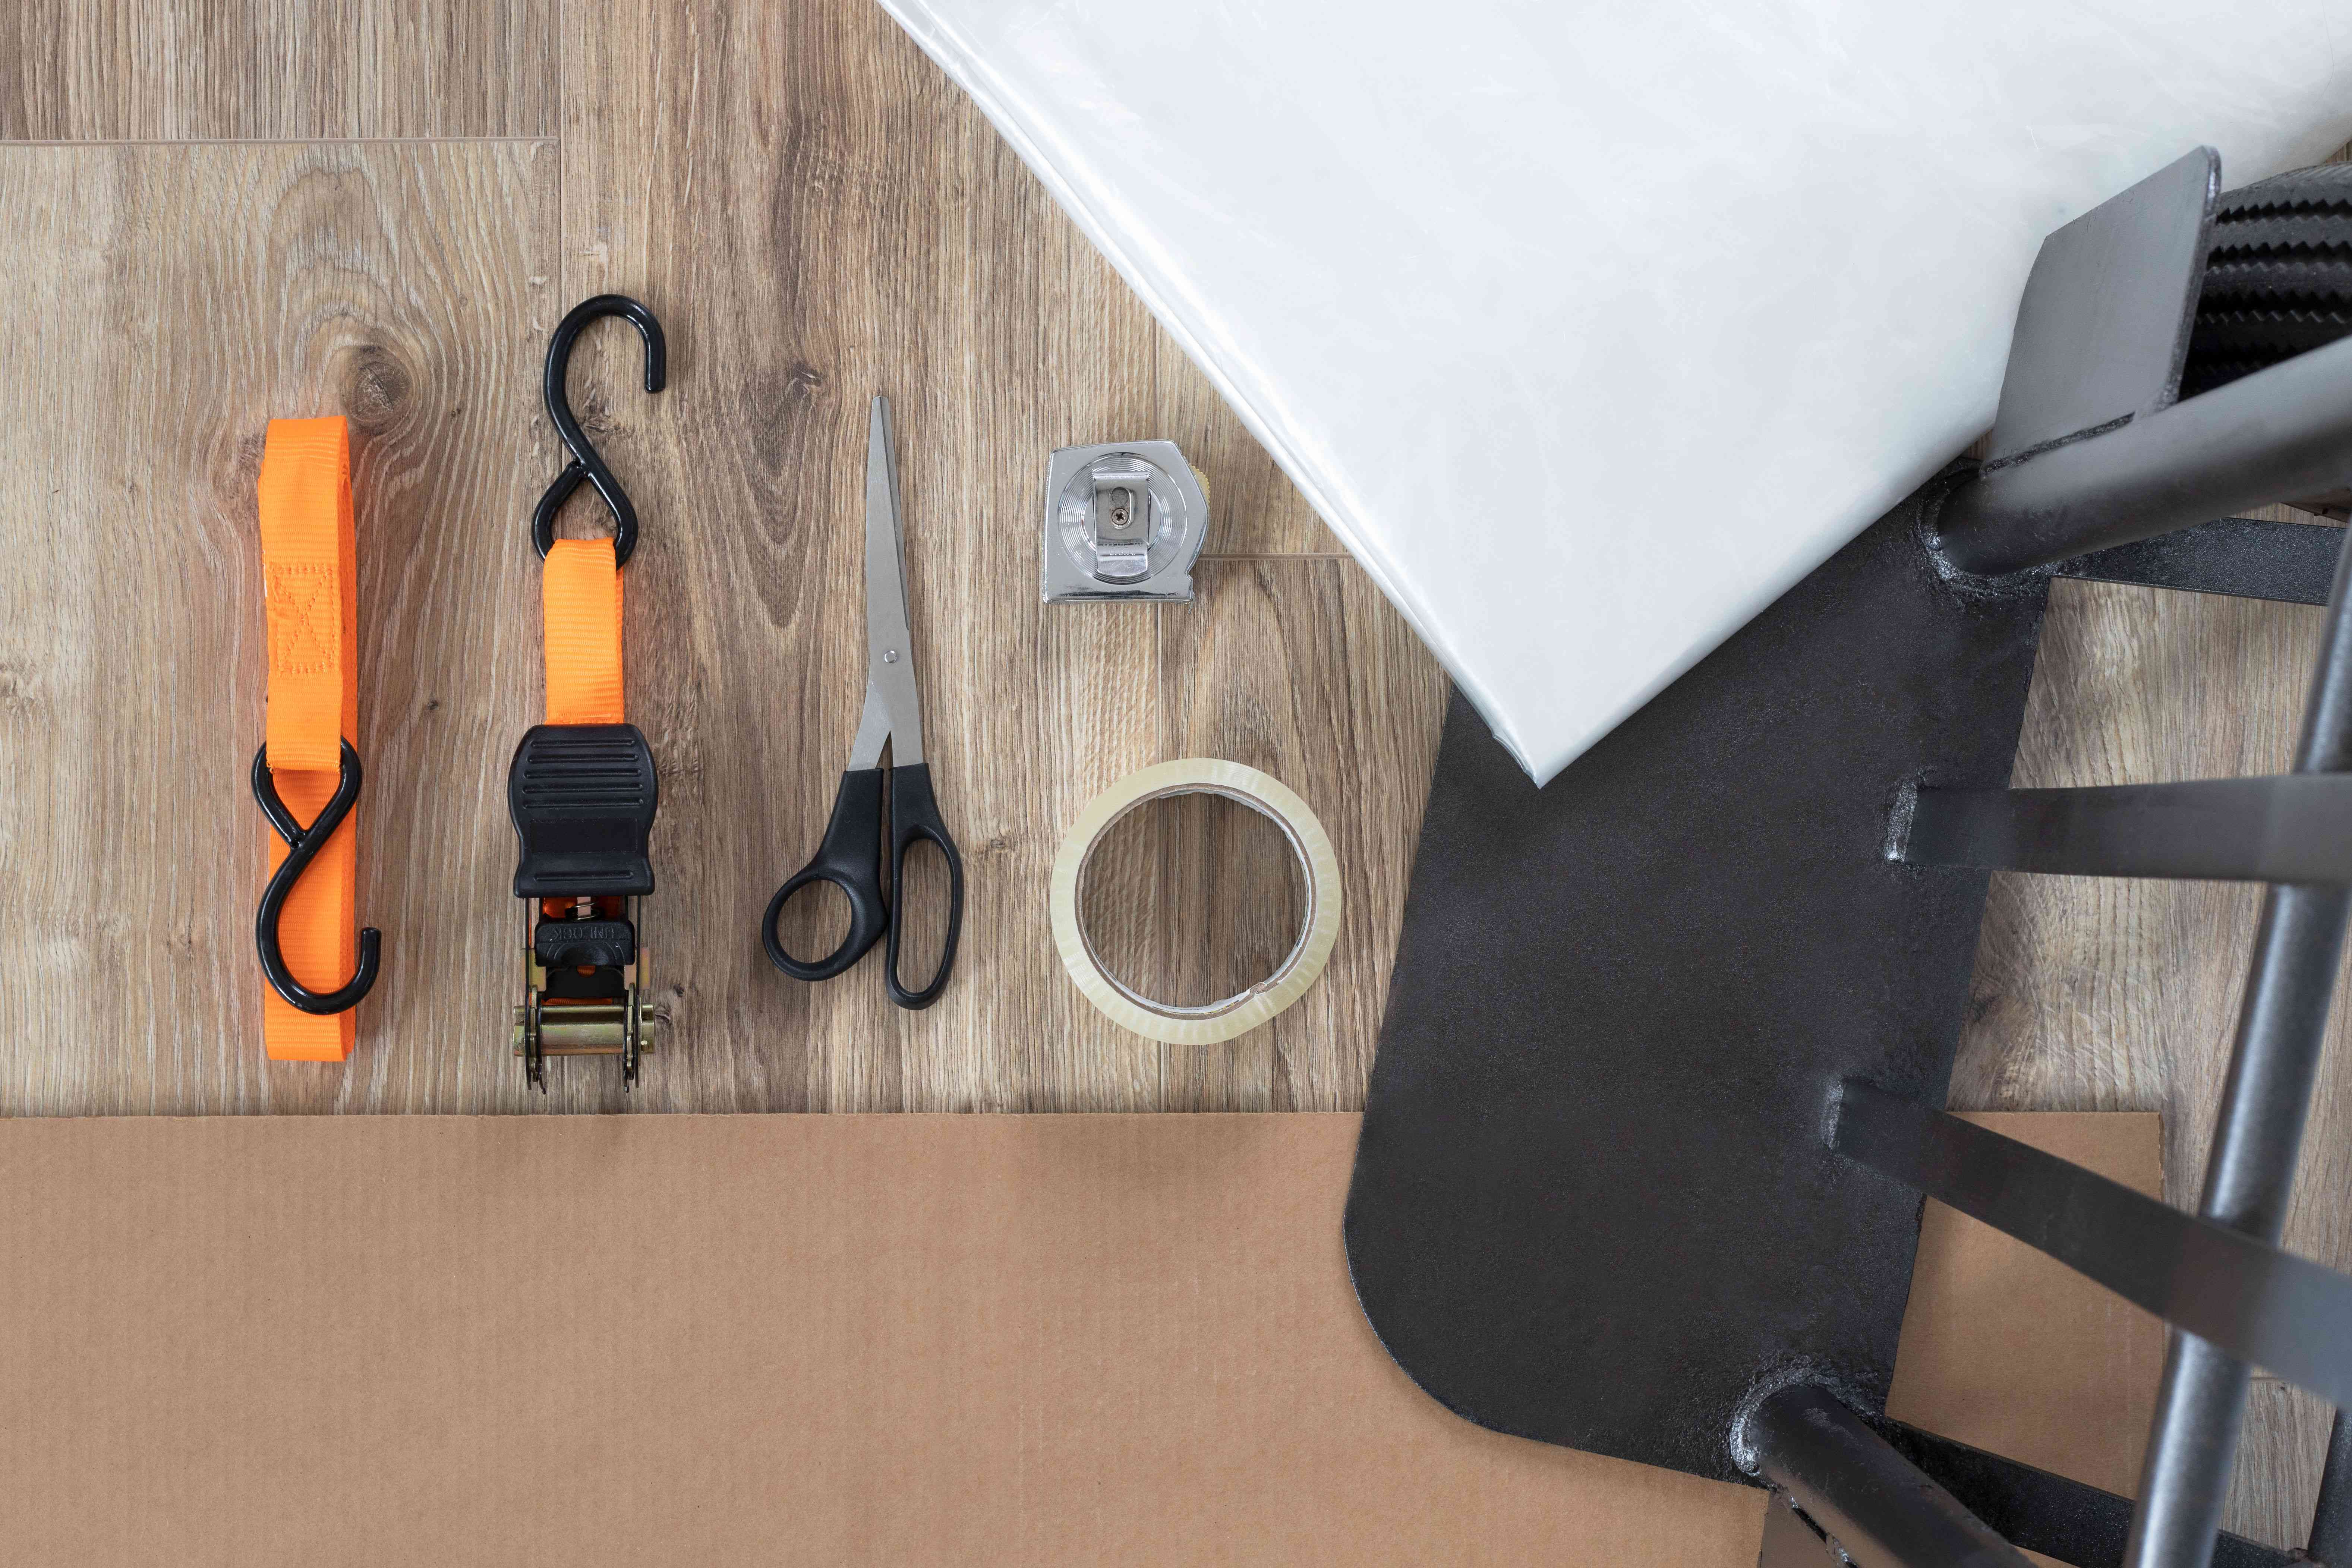 Materials and tools to move and store a mattress